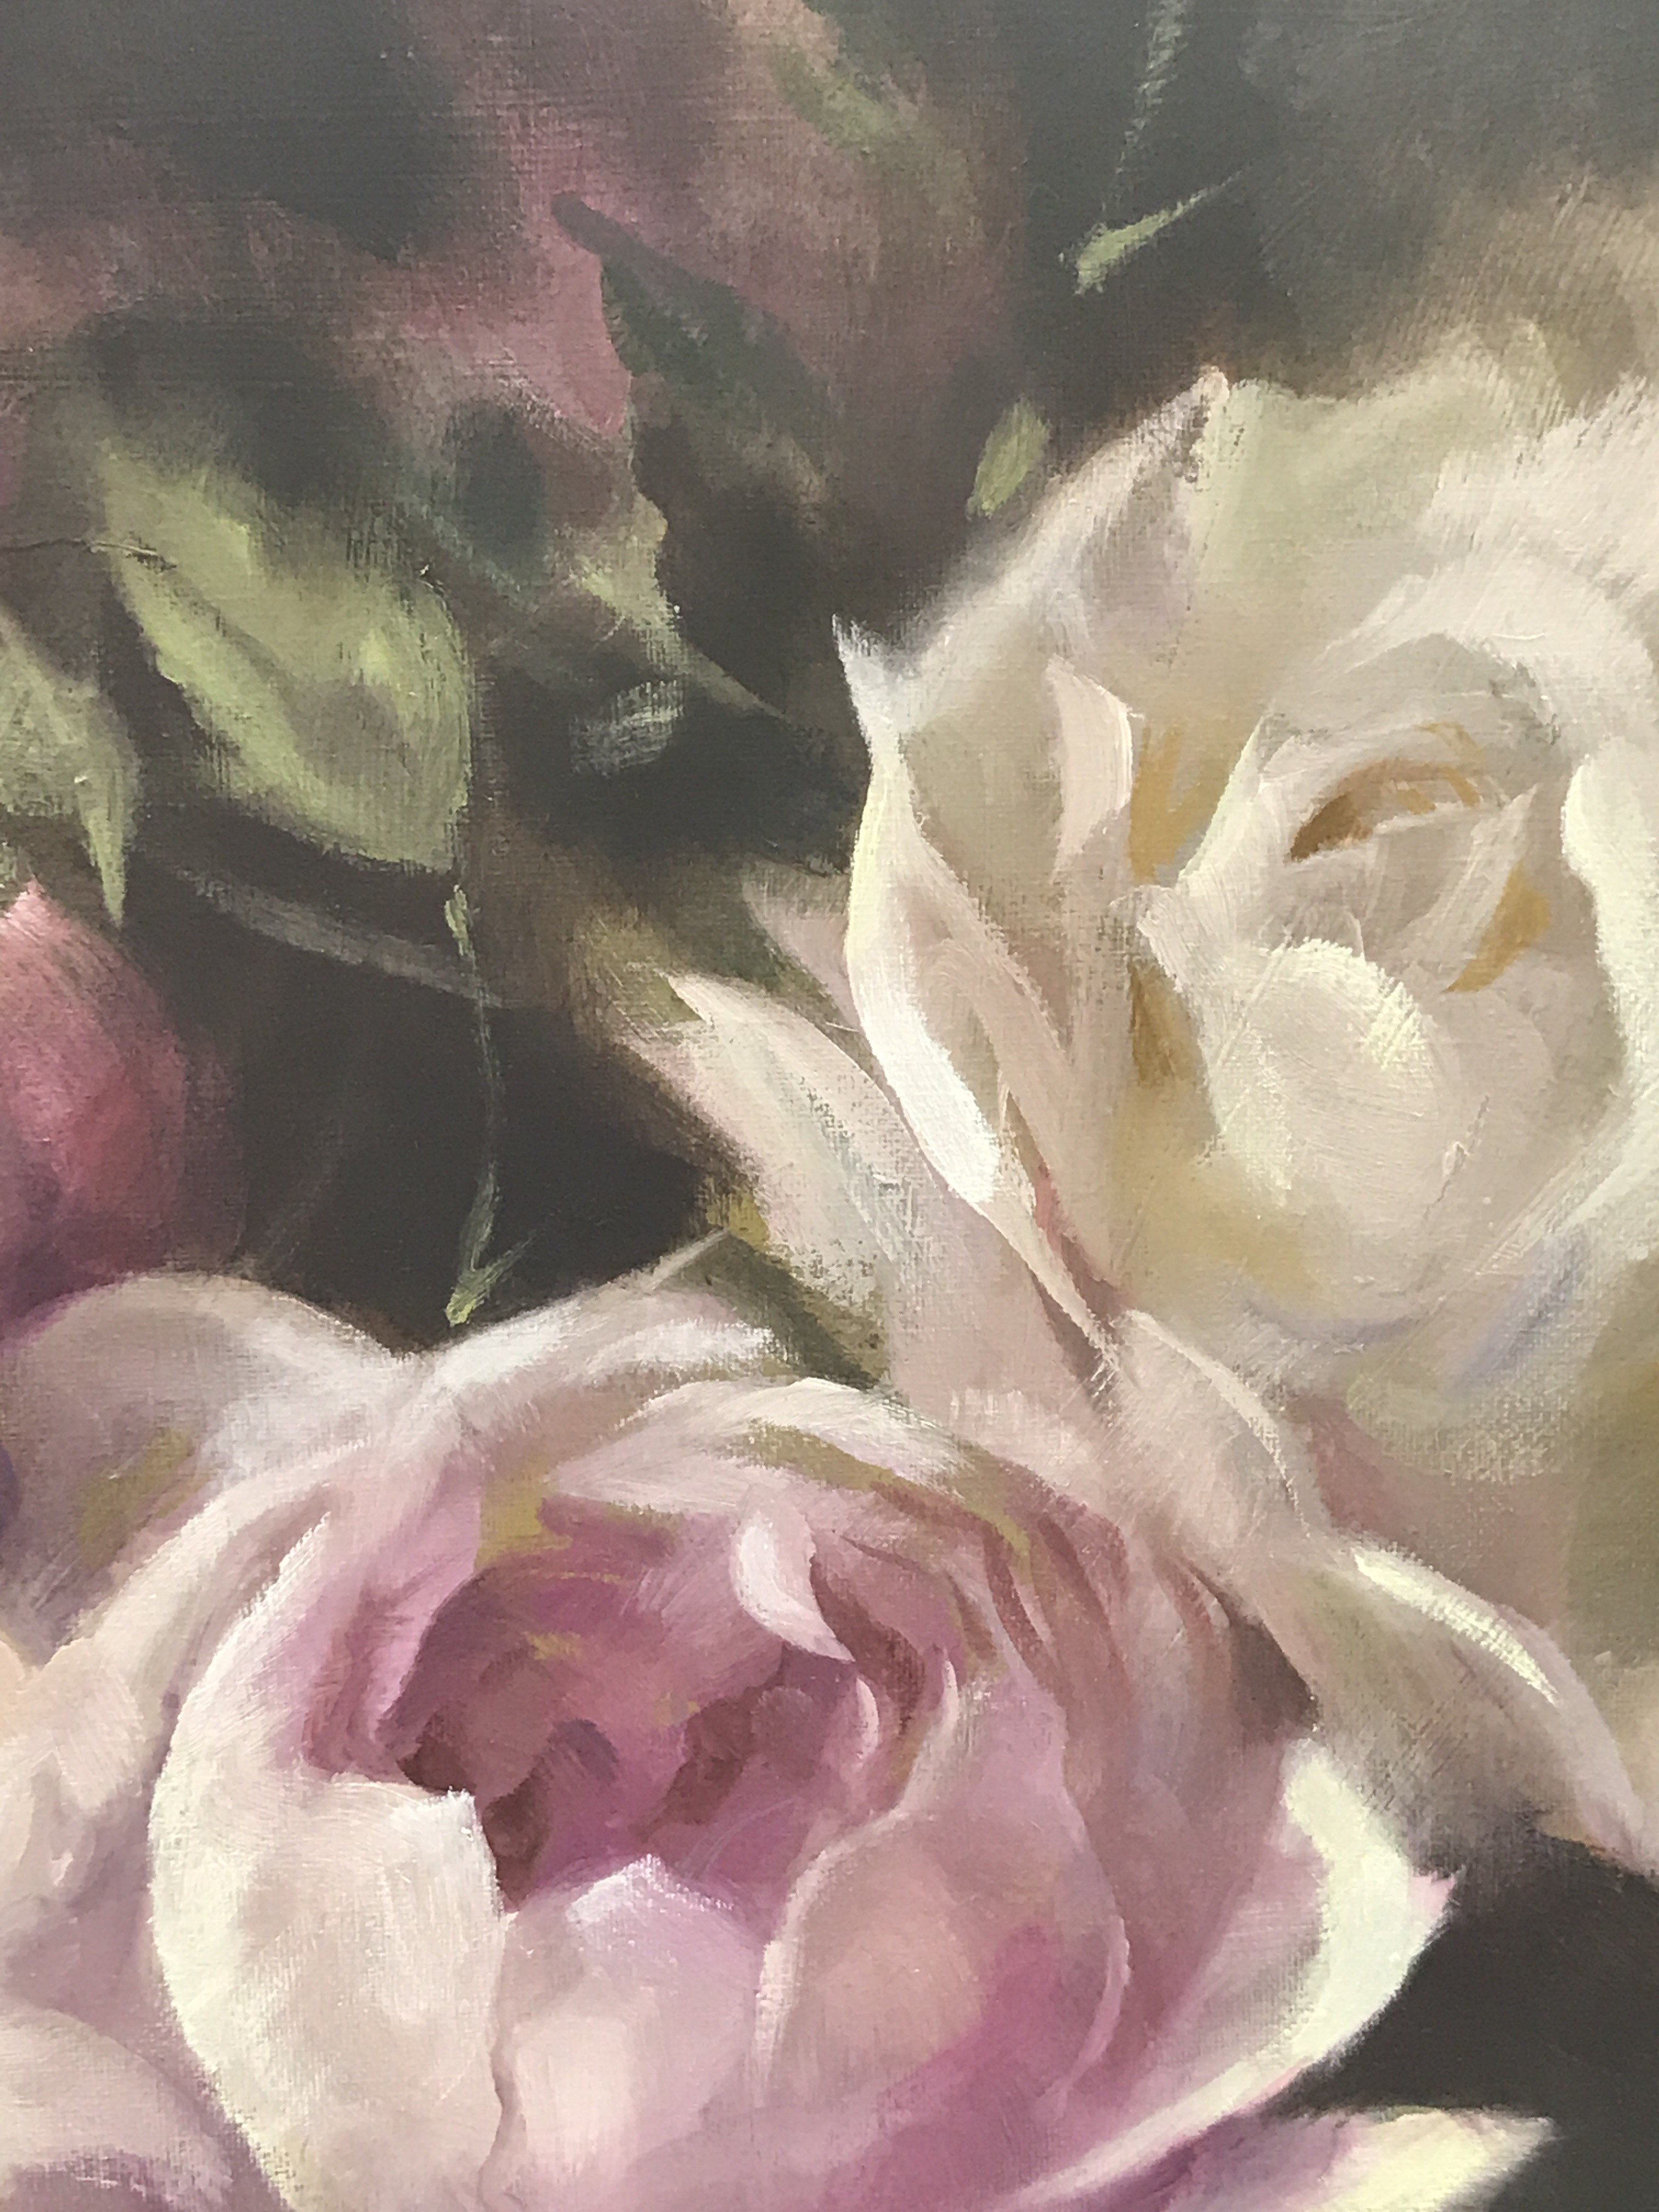 Pink Peonies is an original oil painting by Trevor Waugh. The soft tones and impressionistic edge adds depth to the piece.